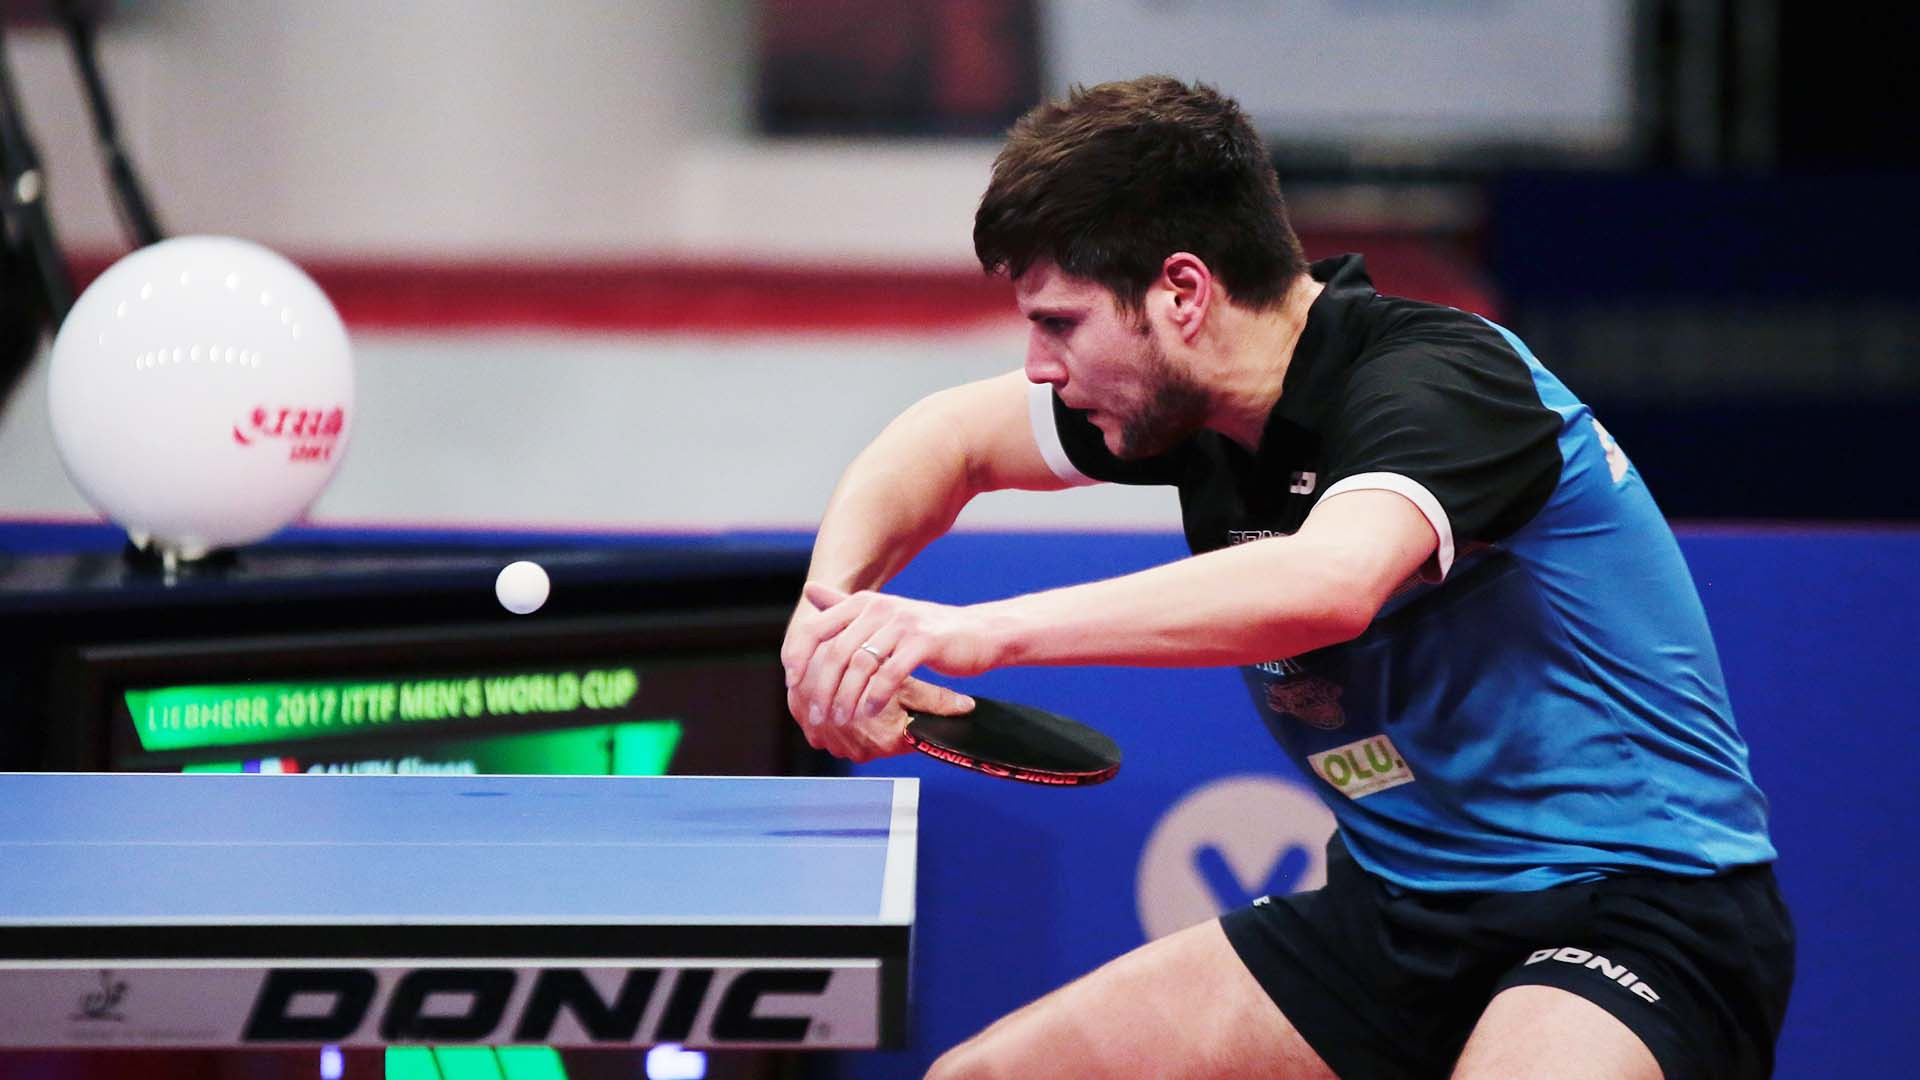 China fail to win ITTF Men's World Cup title for first time since 2009 as Ovtcharov triumphs